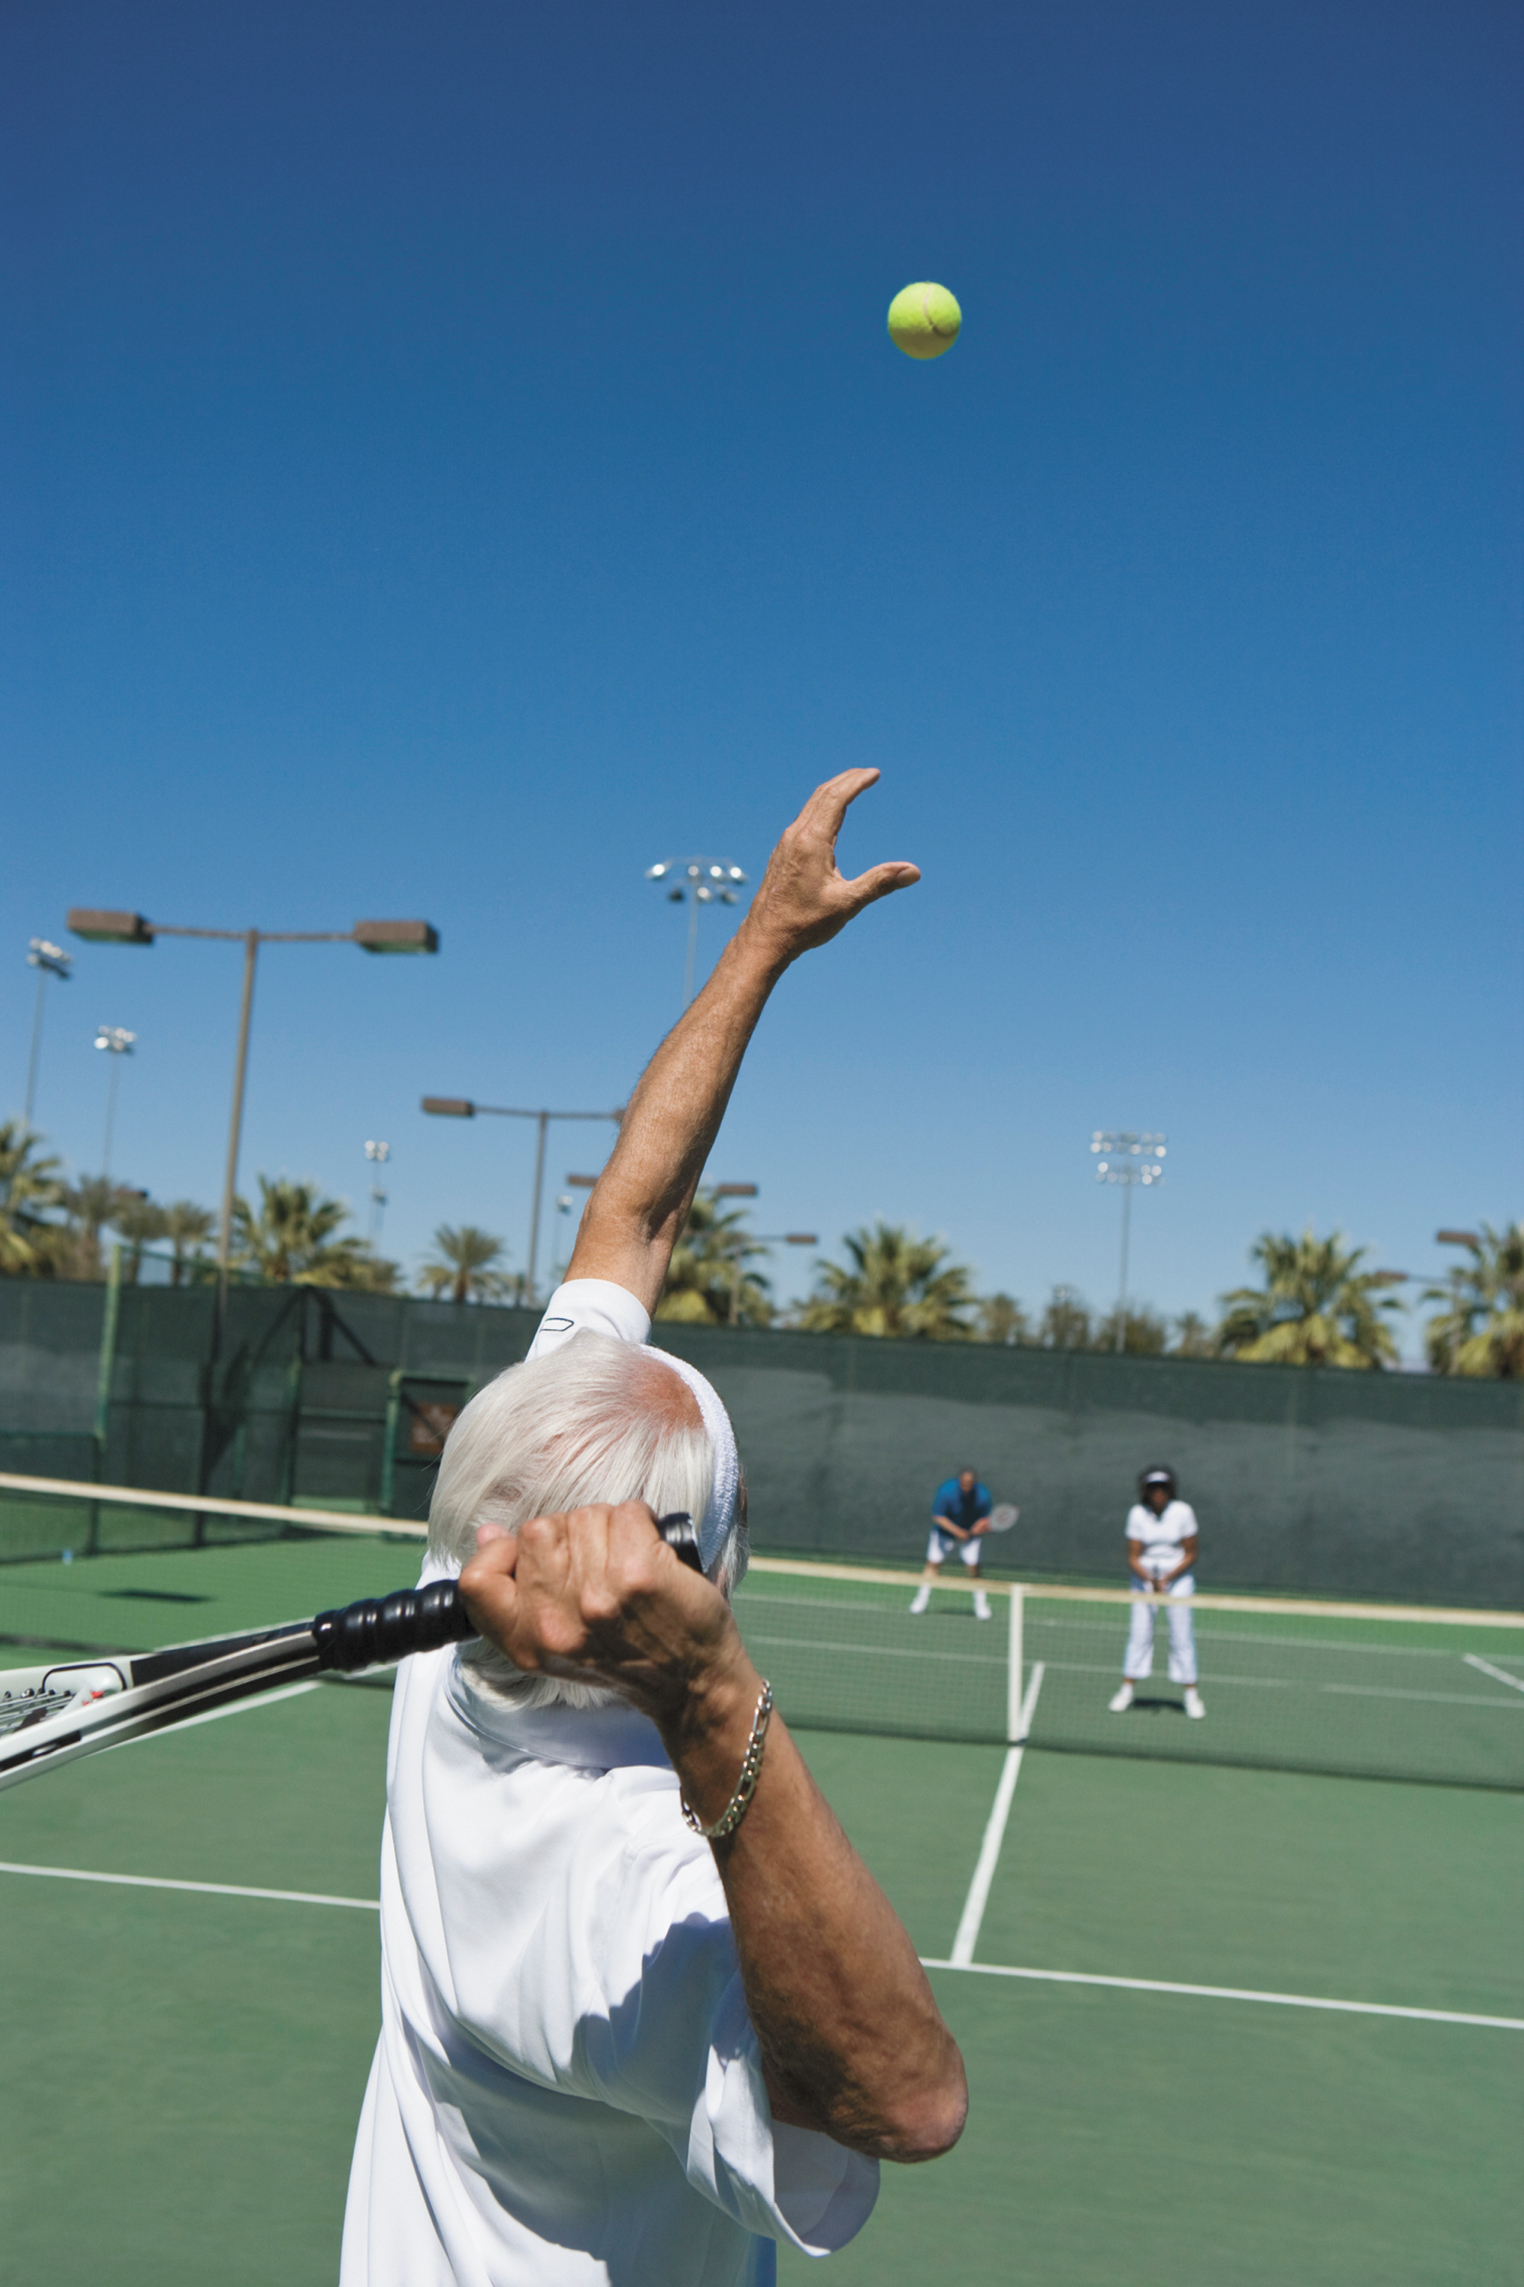 Trouble with your serve? Chin up - it'll get better